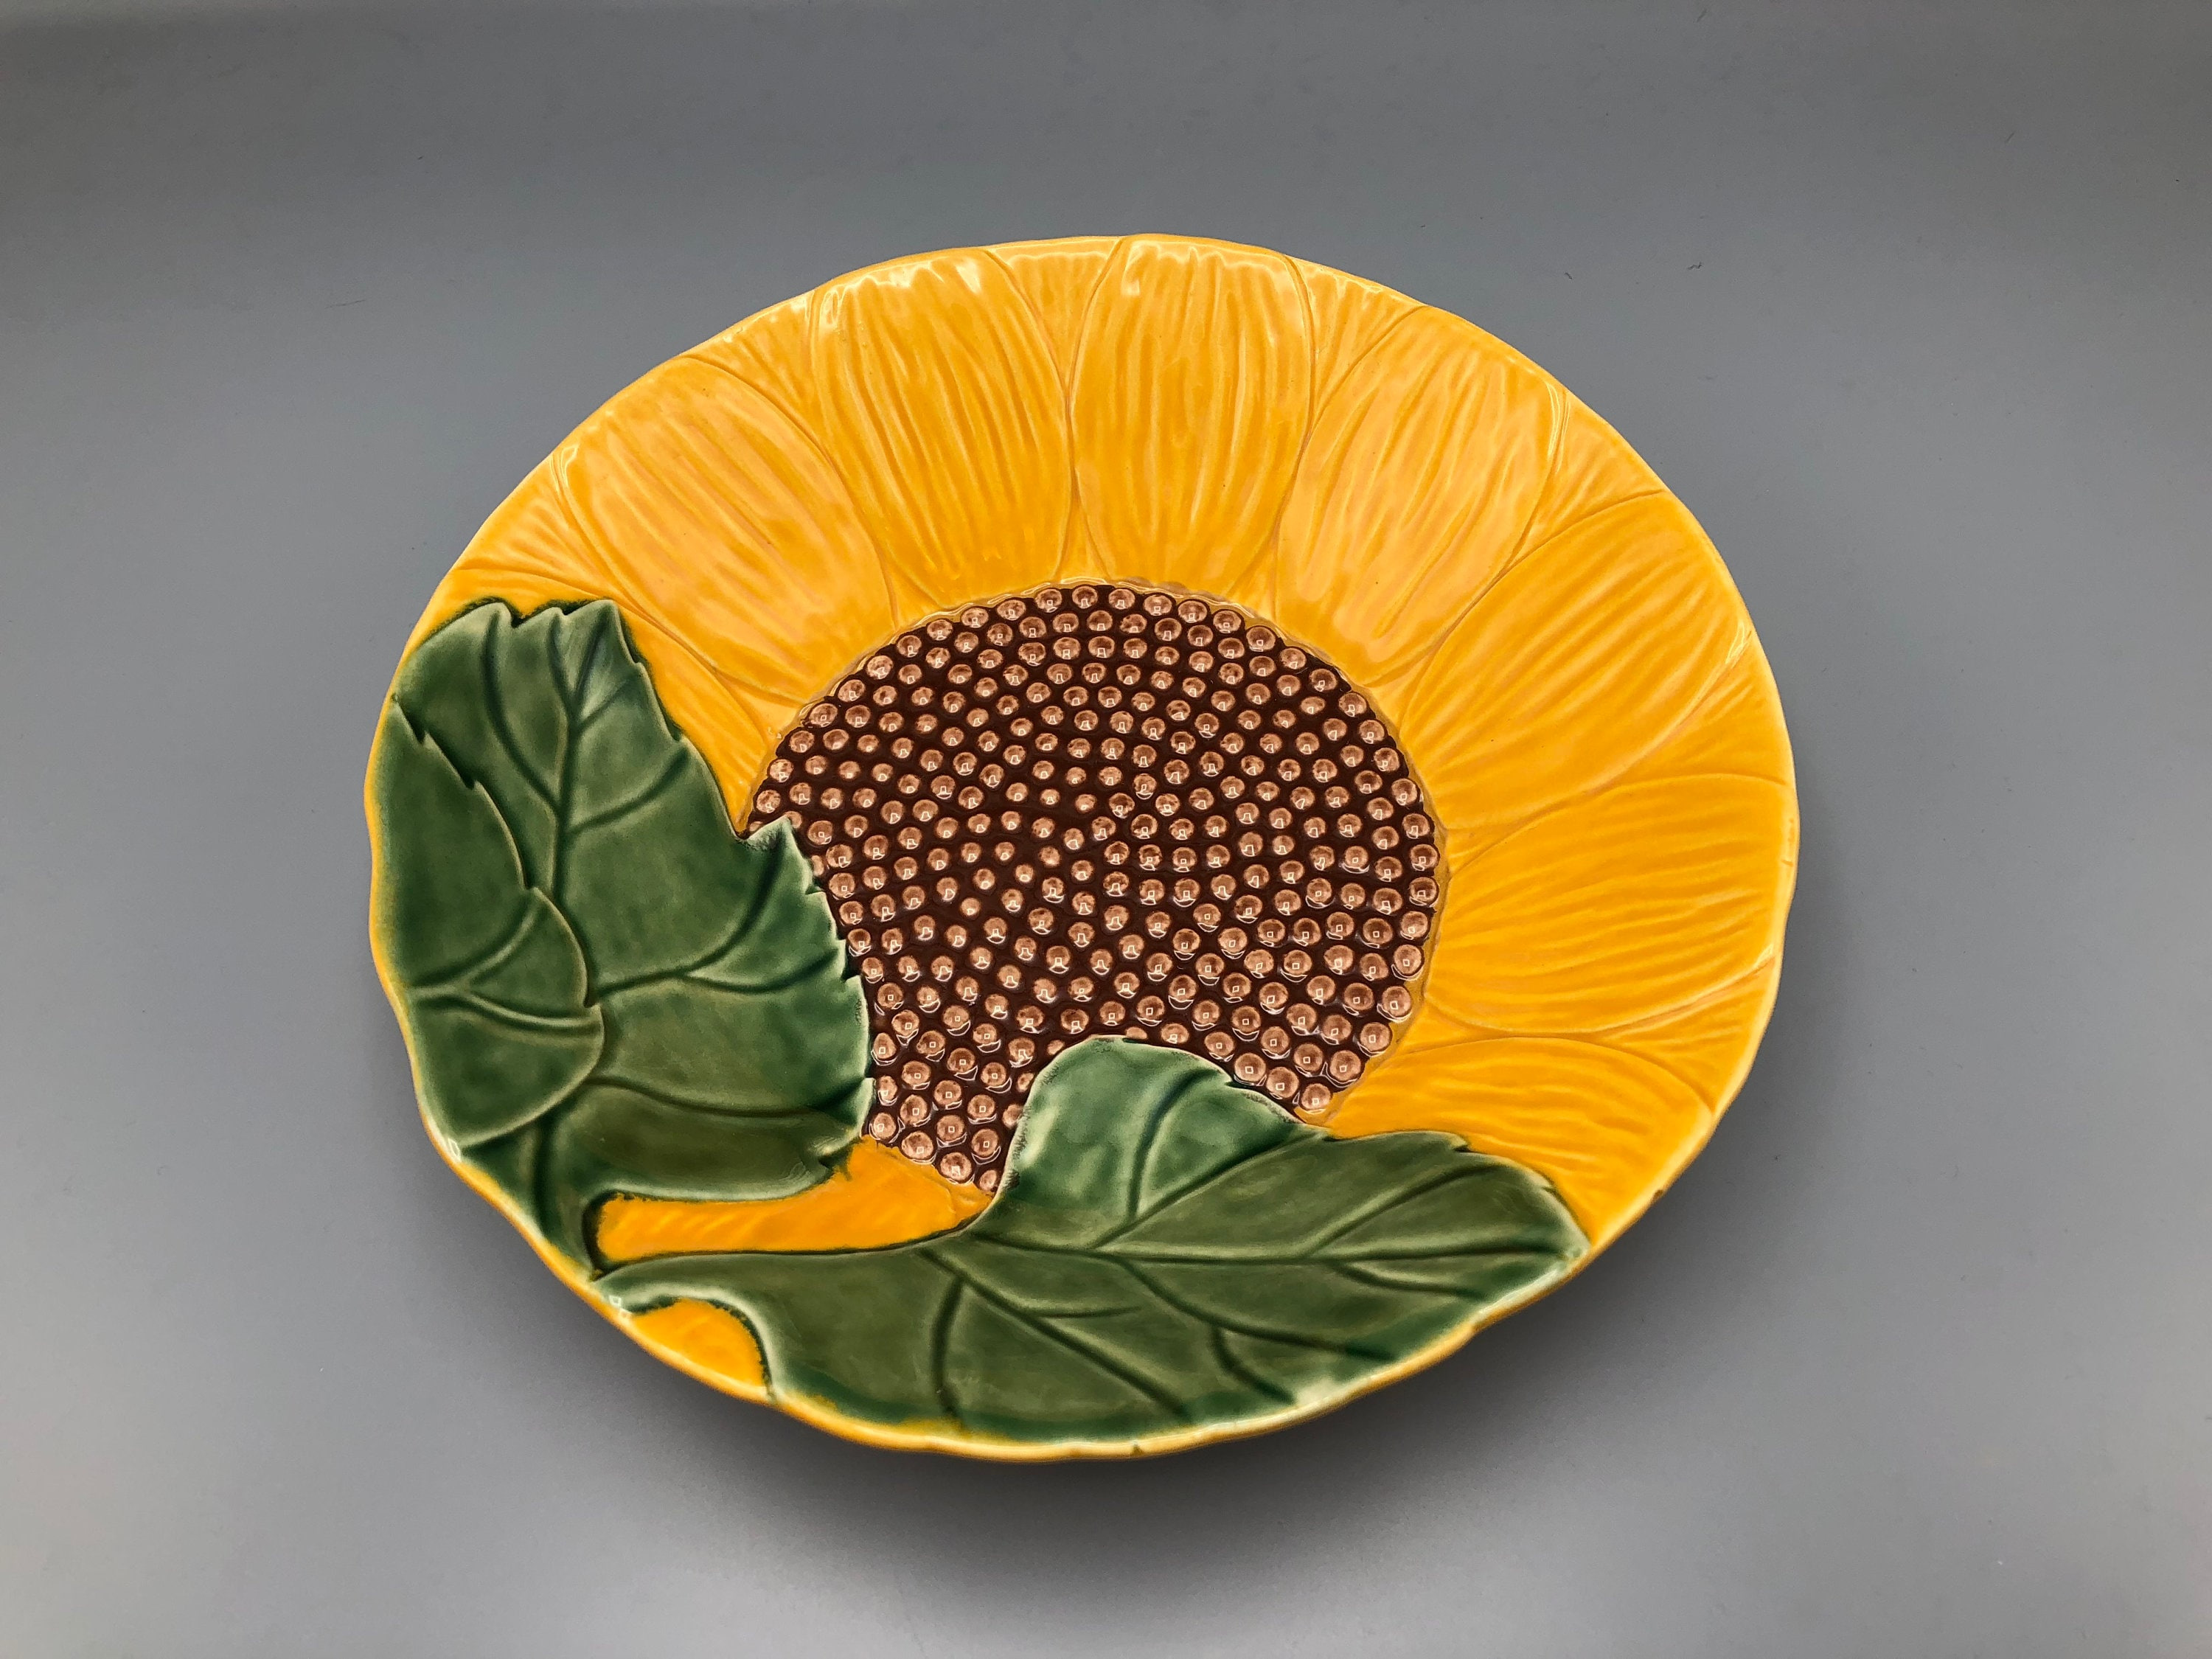 Vintage Majolica Sunflower Dish Bowl Ceramic Made In Portugal Etsy